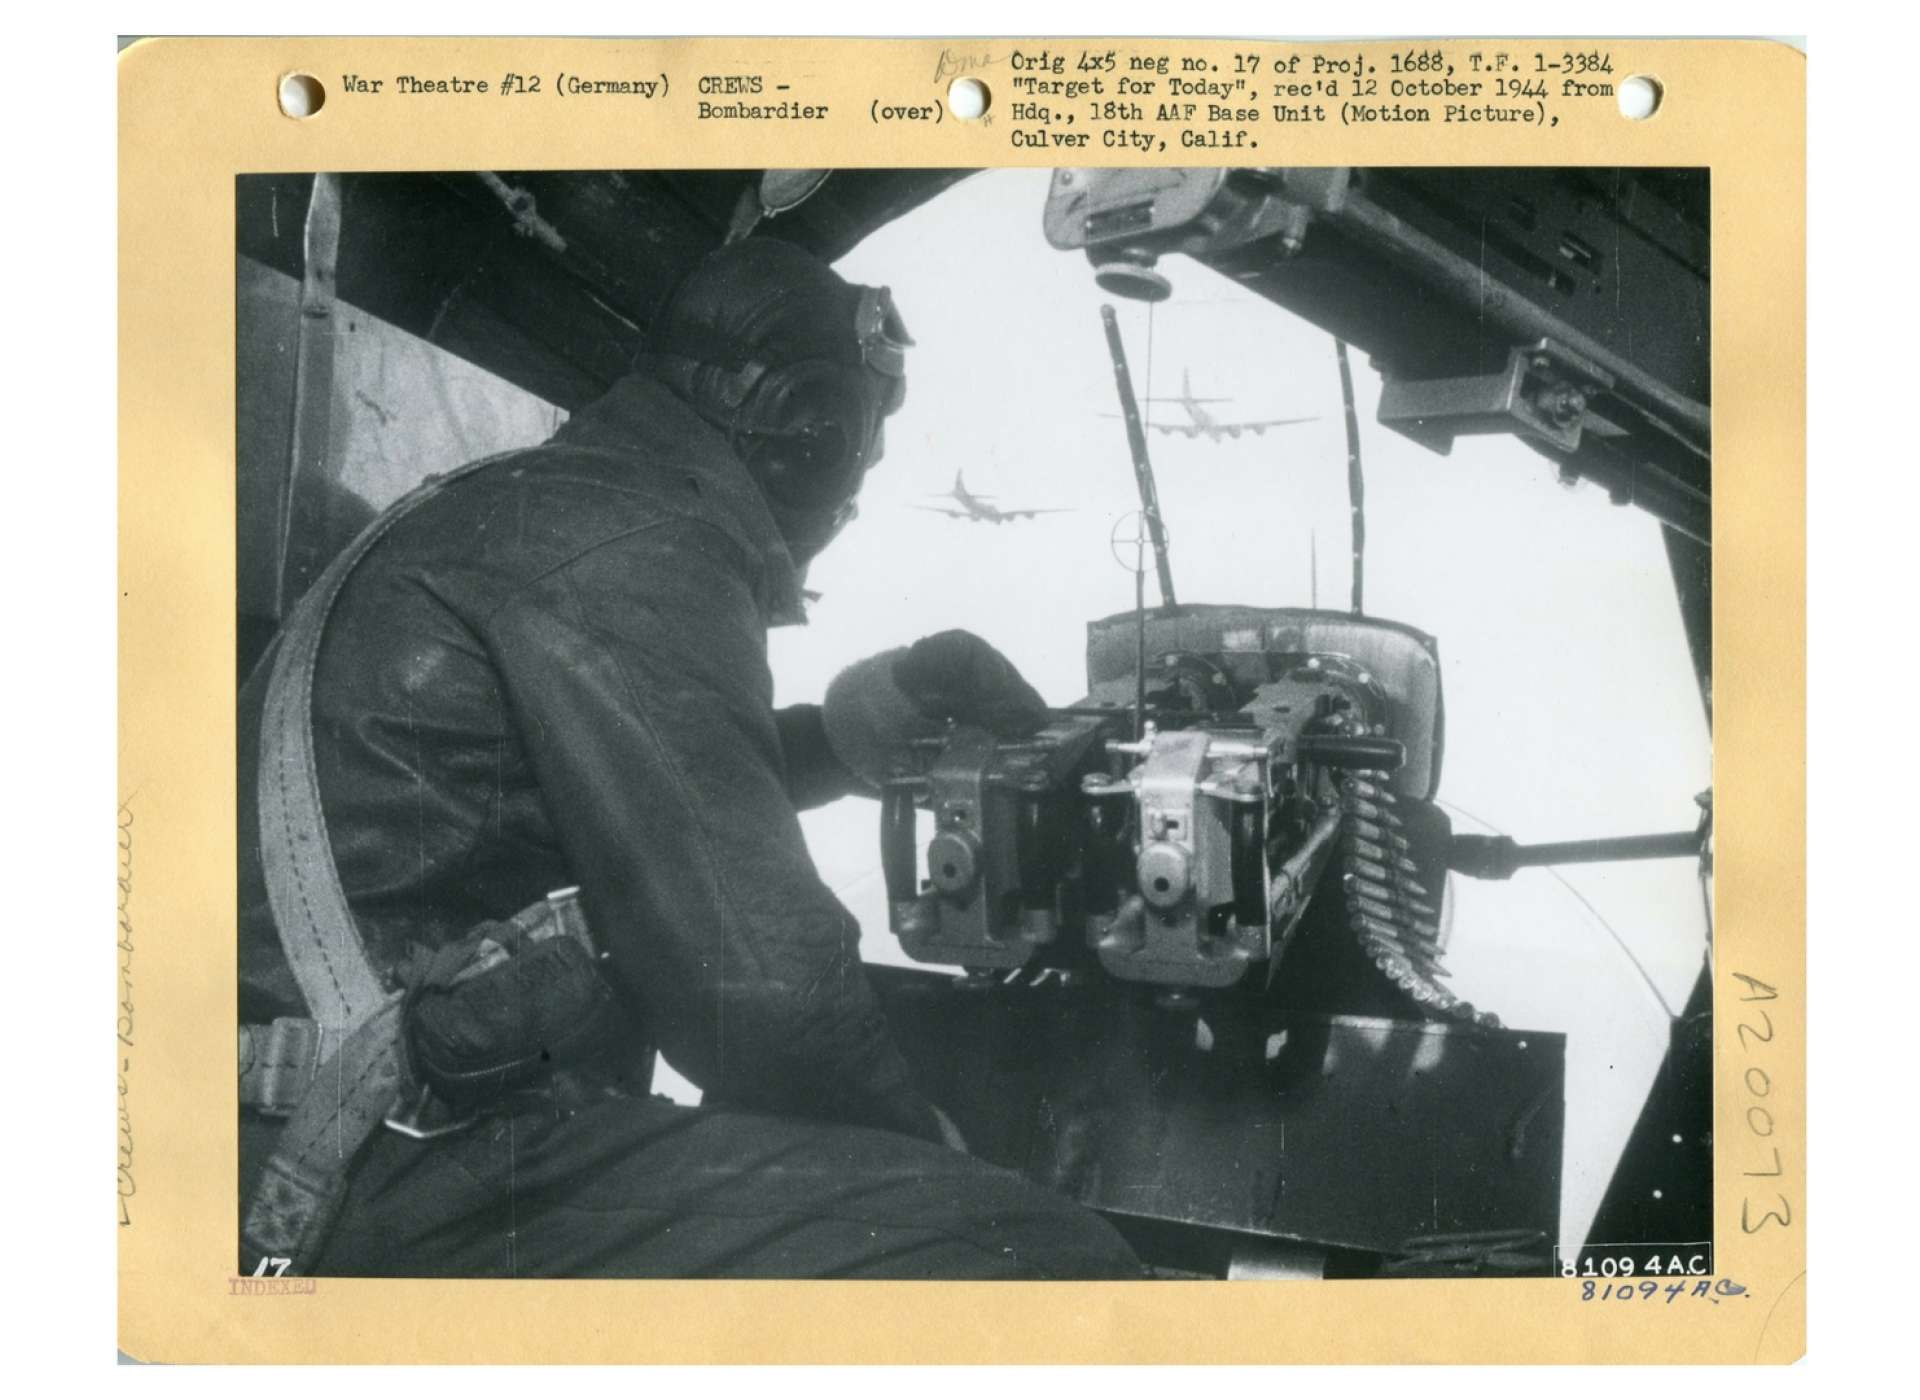 bombardier on B-17F